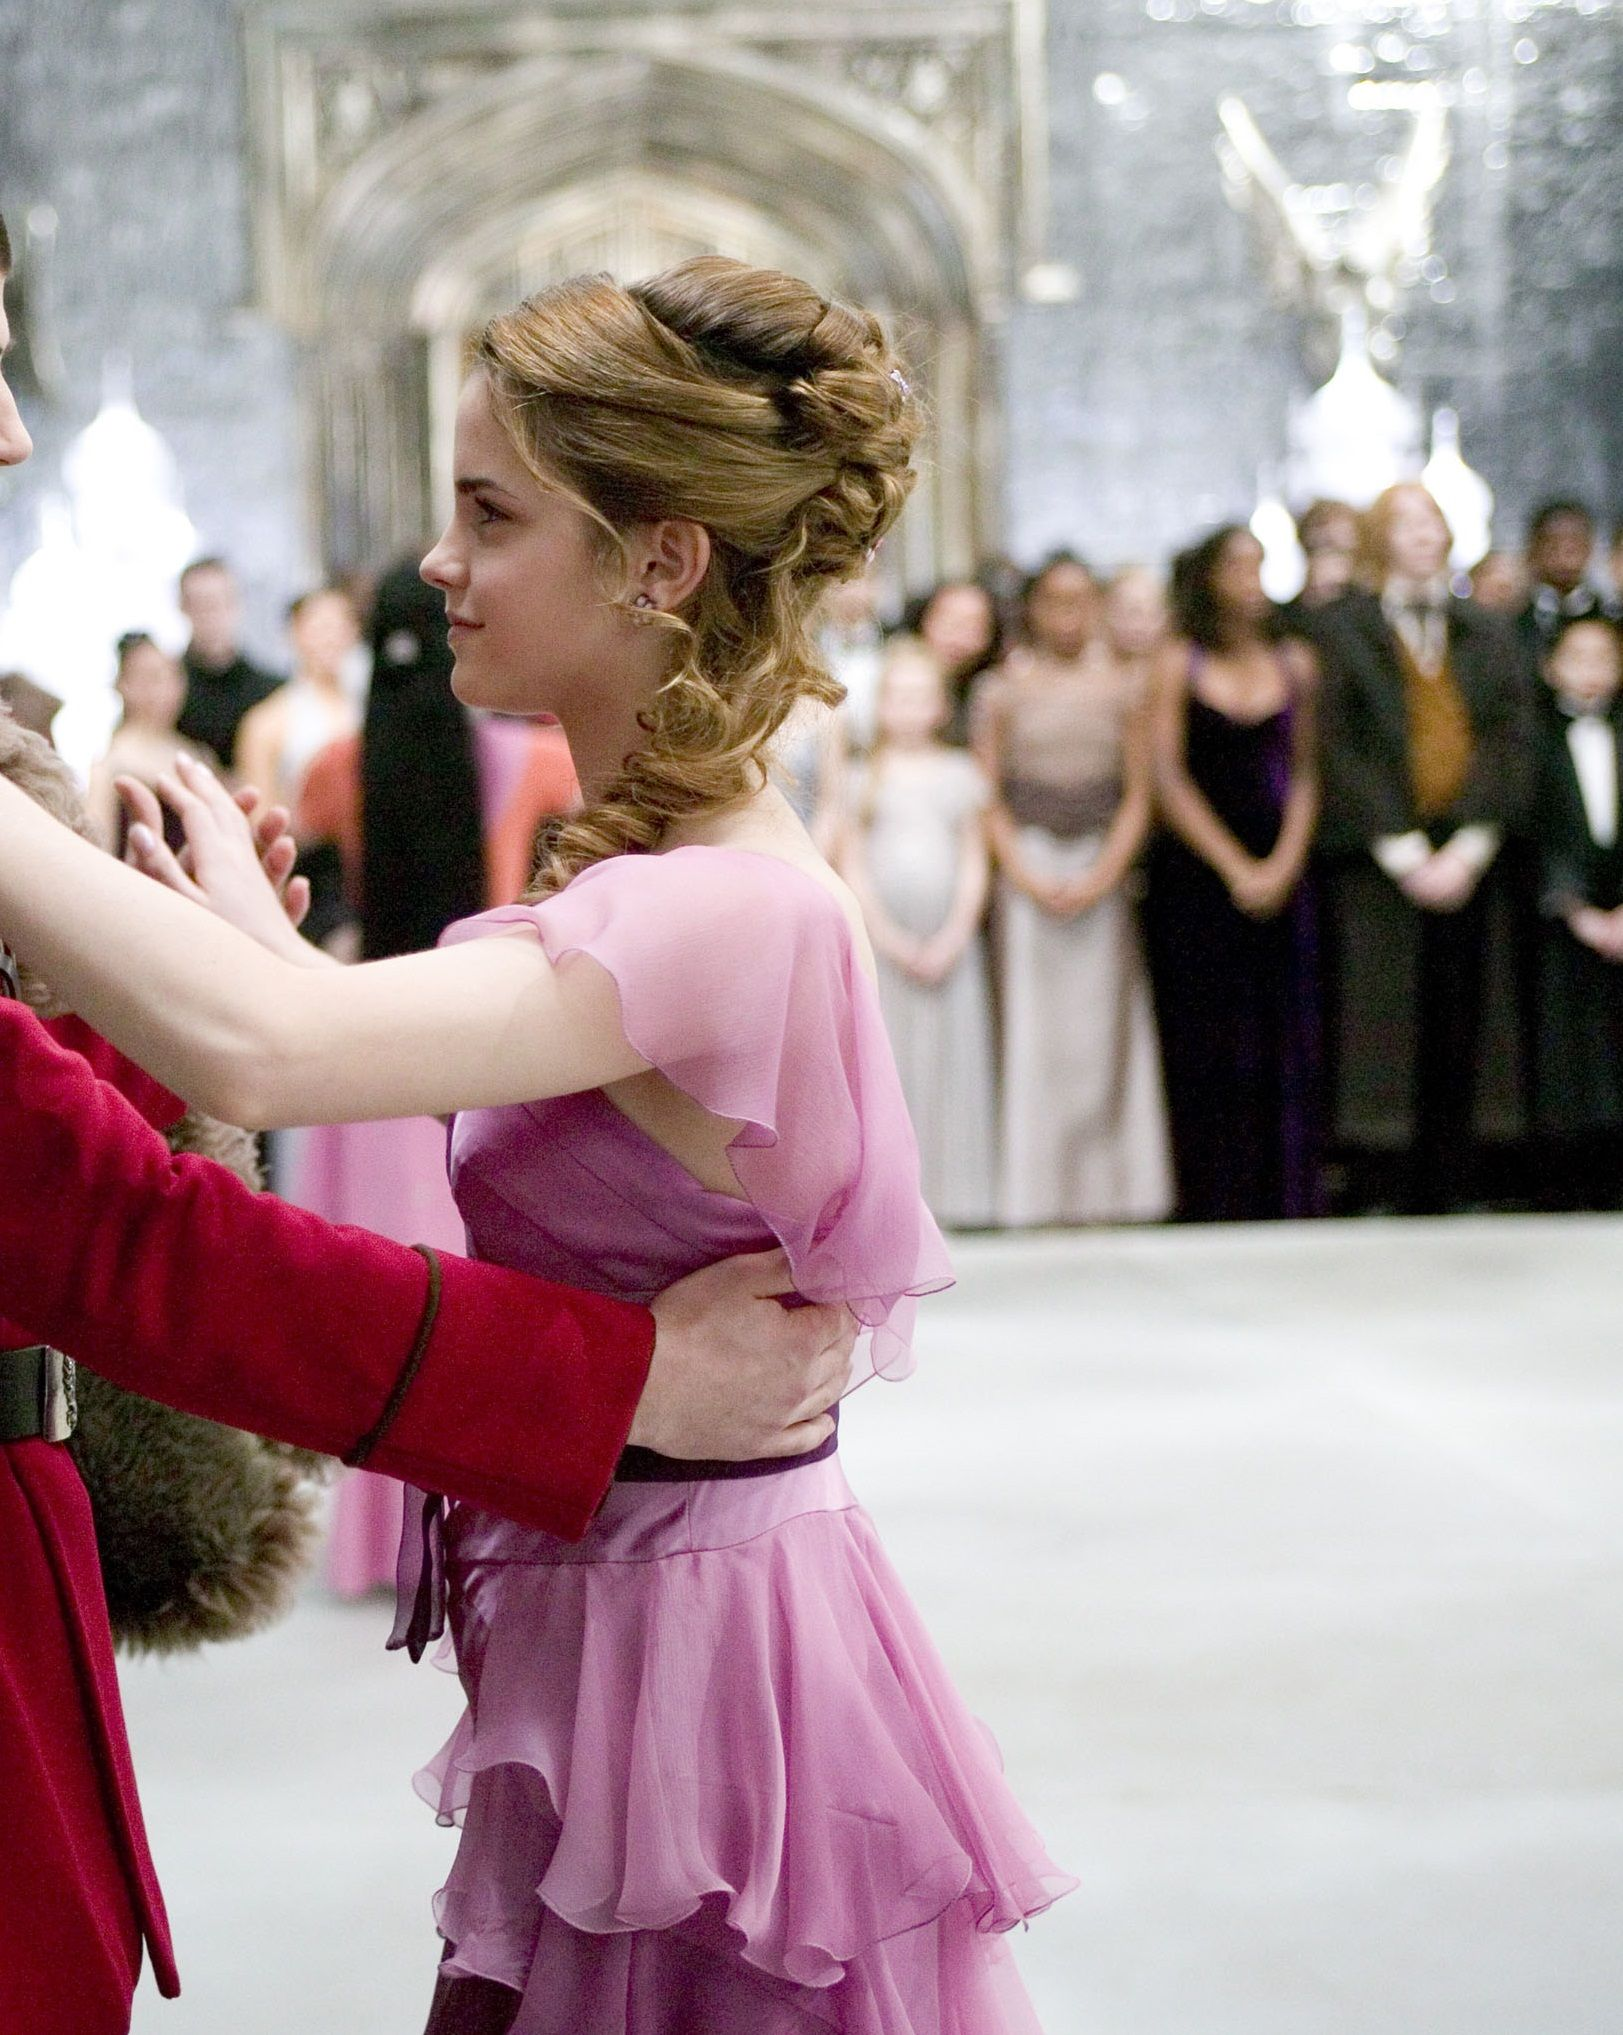 Emma In Harry Potter And The Goblet Of Fire Emma Watson Harry Potter Hermione Granger Hair Harry Potter Characters